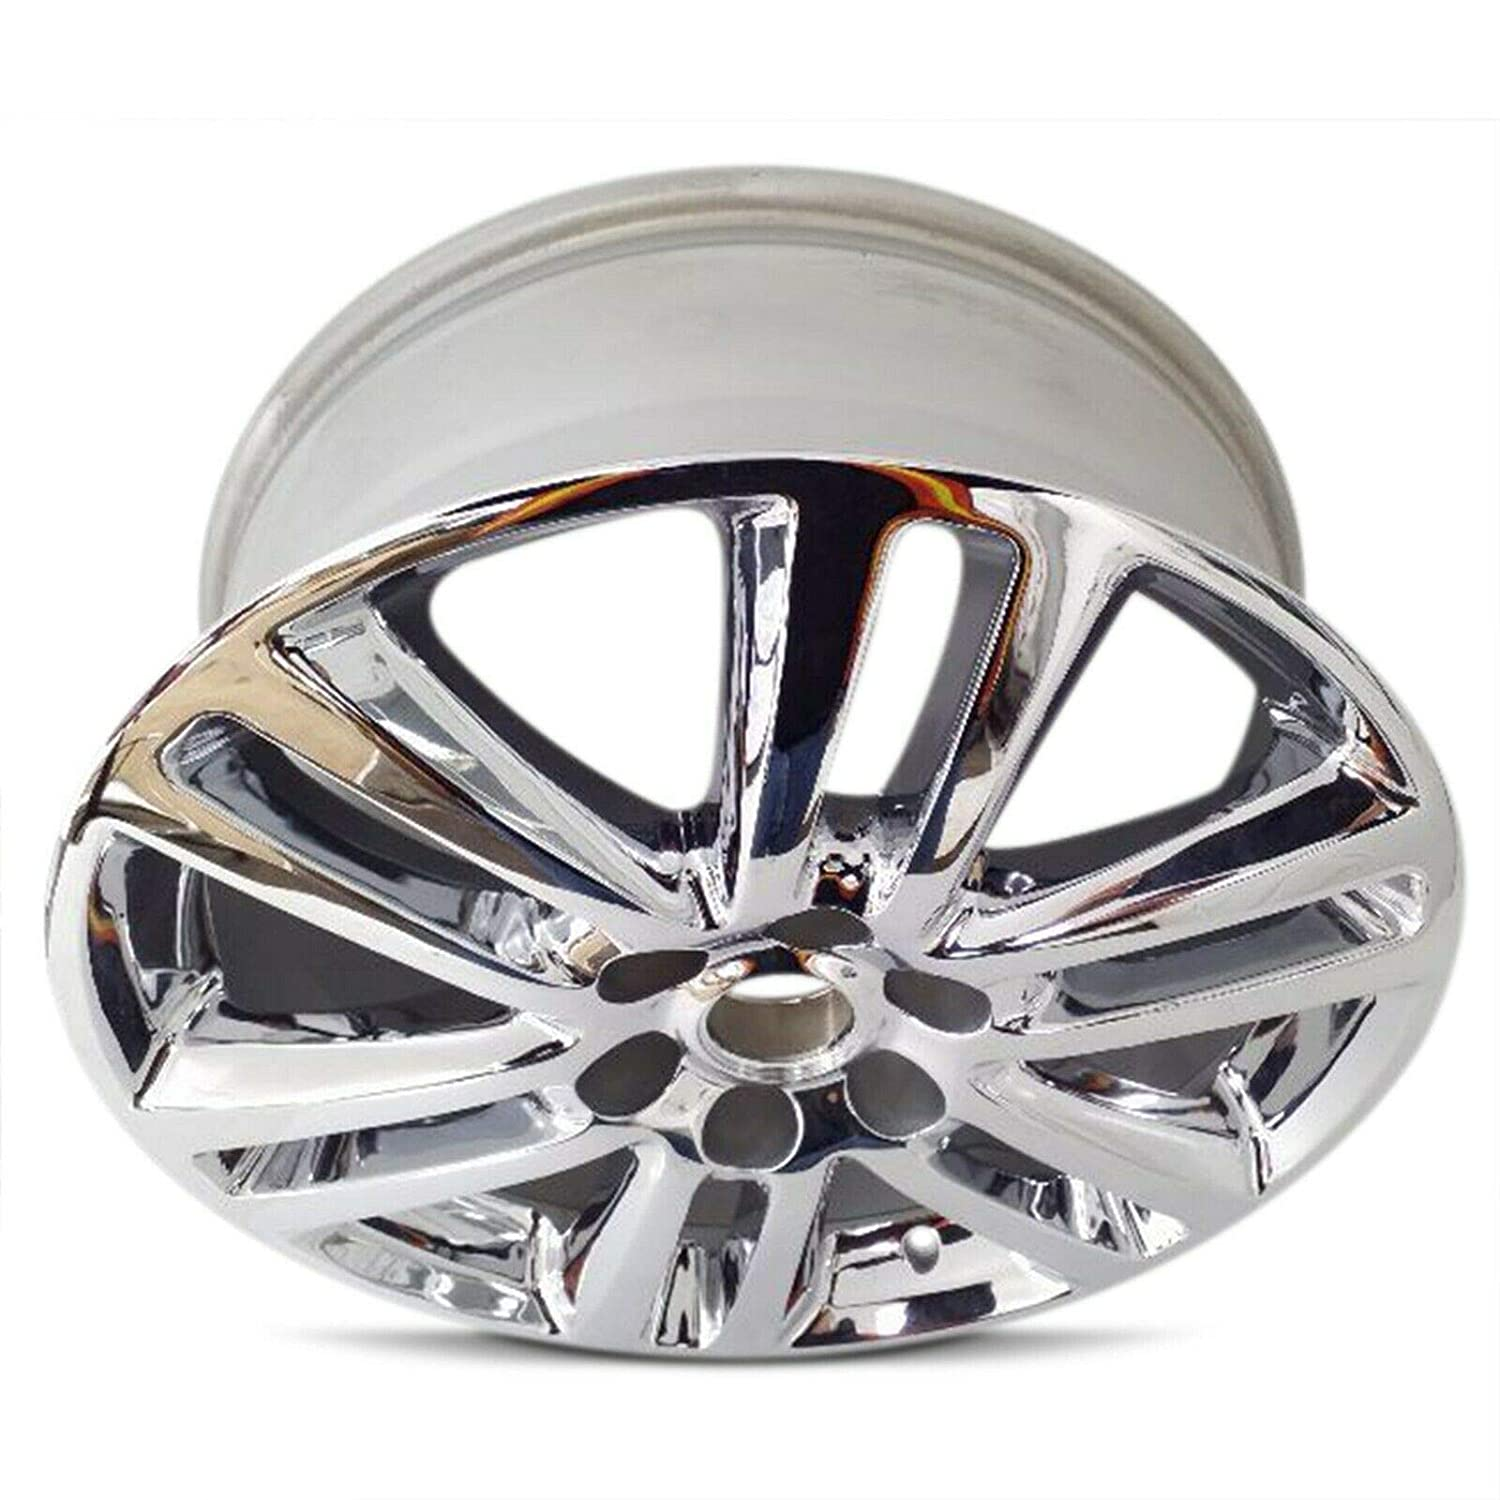 Bill Smith Auto Replacement For Chrome Wheel Rim 20x7.5 Inch 2009-2015 Chevy Traverse 2007-2015 GMC Acadia